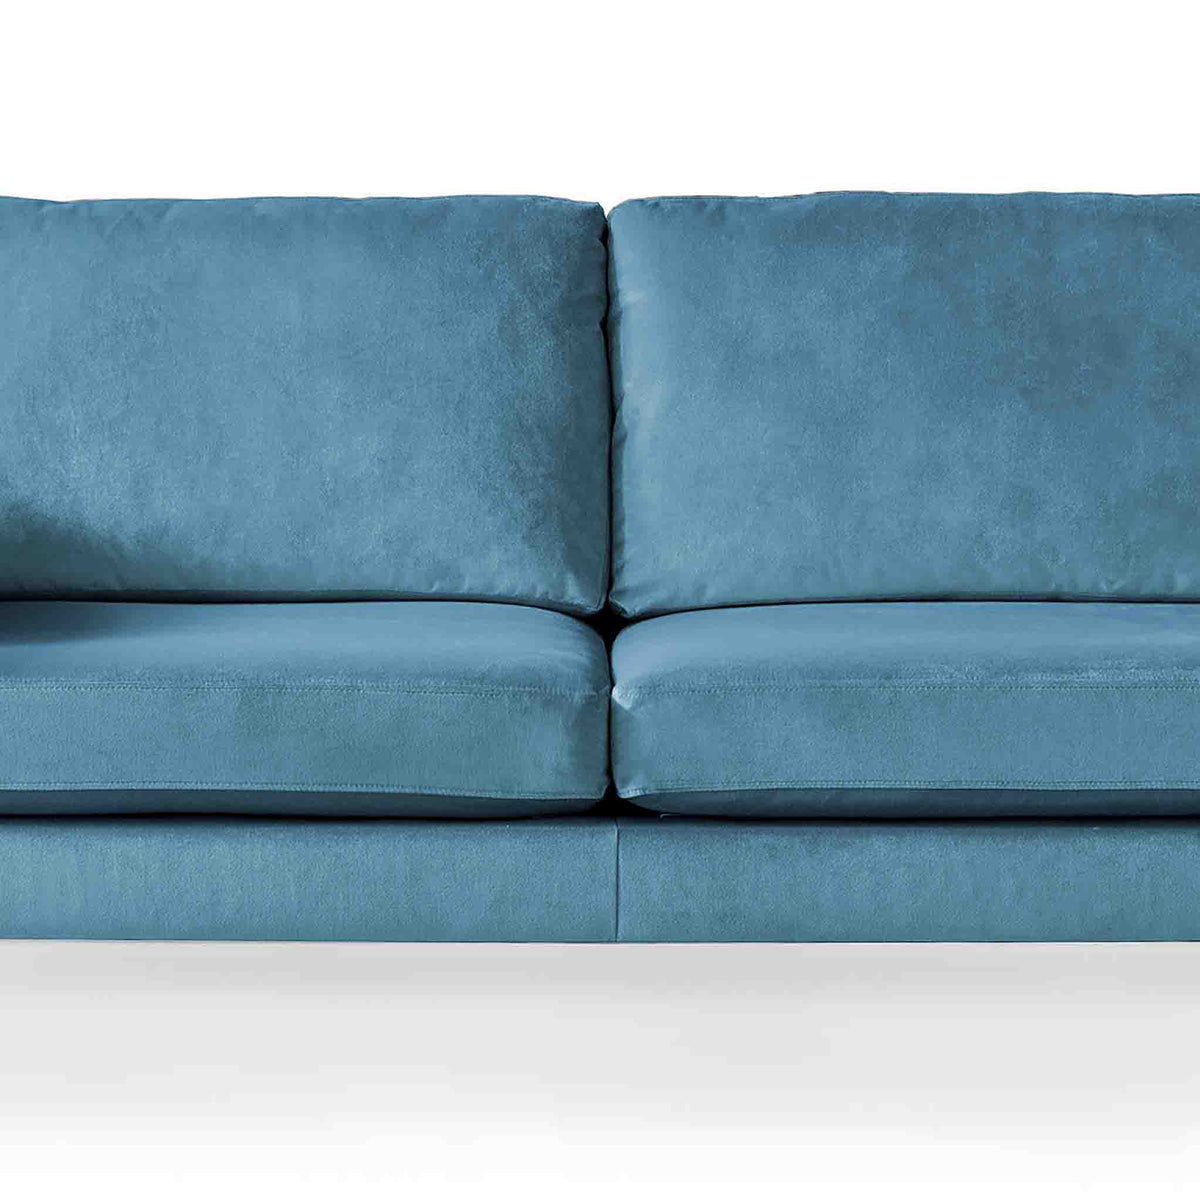 Anton Peacock 3 Seater Sofa - Close up of mid section on sofa